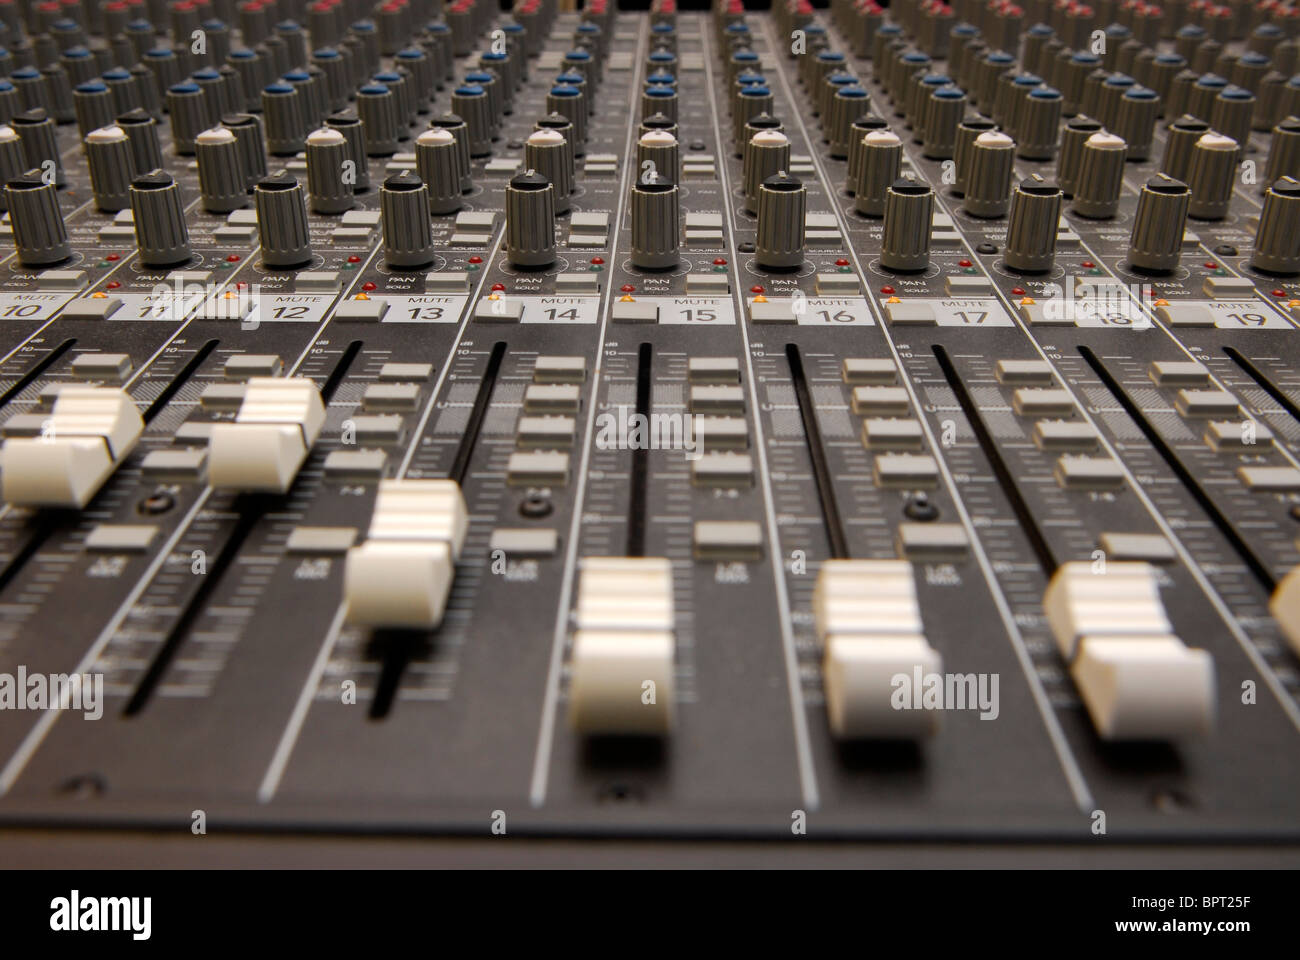 Sound mixing suite at a music resource centre, Sherbourne, Dorset. - Stock Image